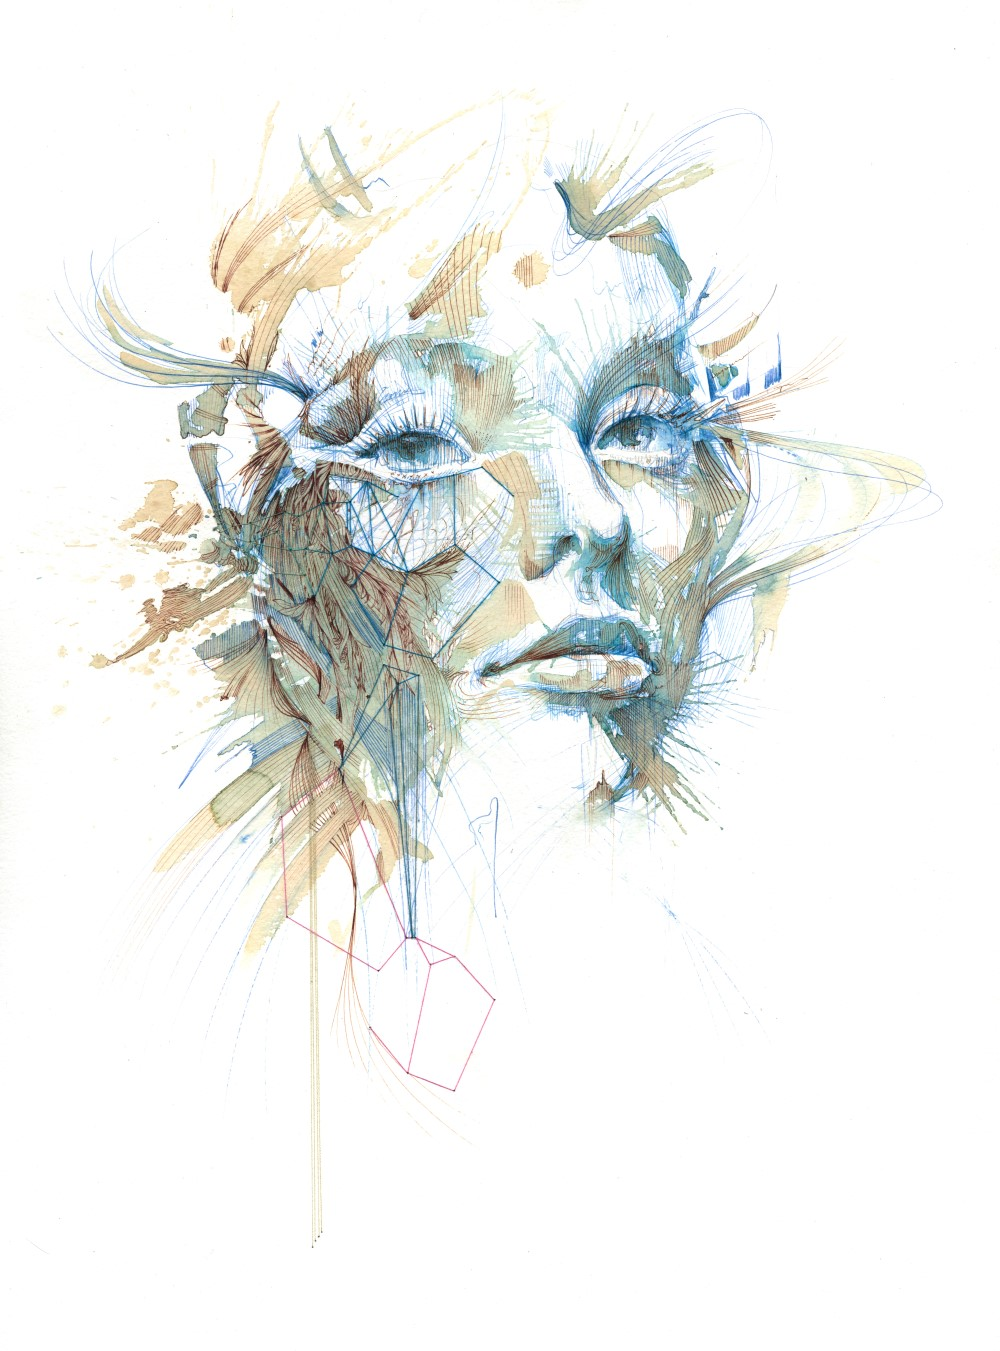 Reconnecting by Carne Griffiths